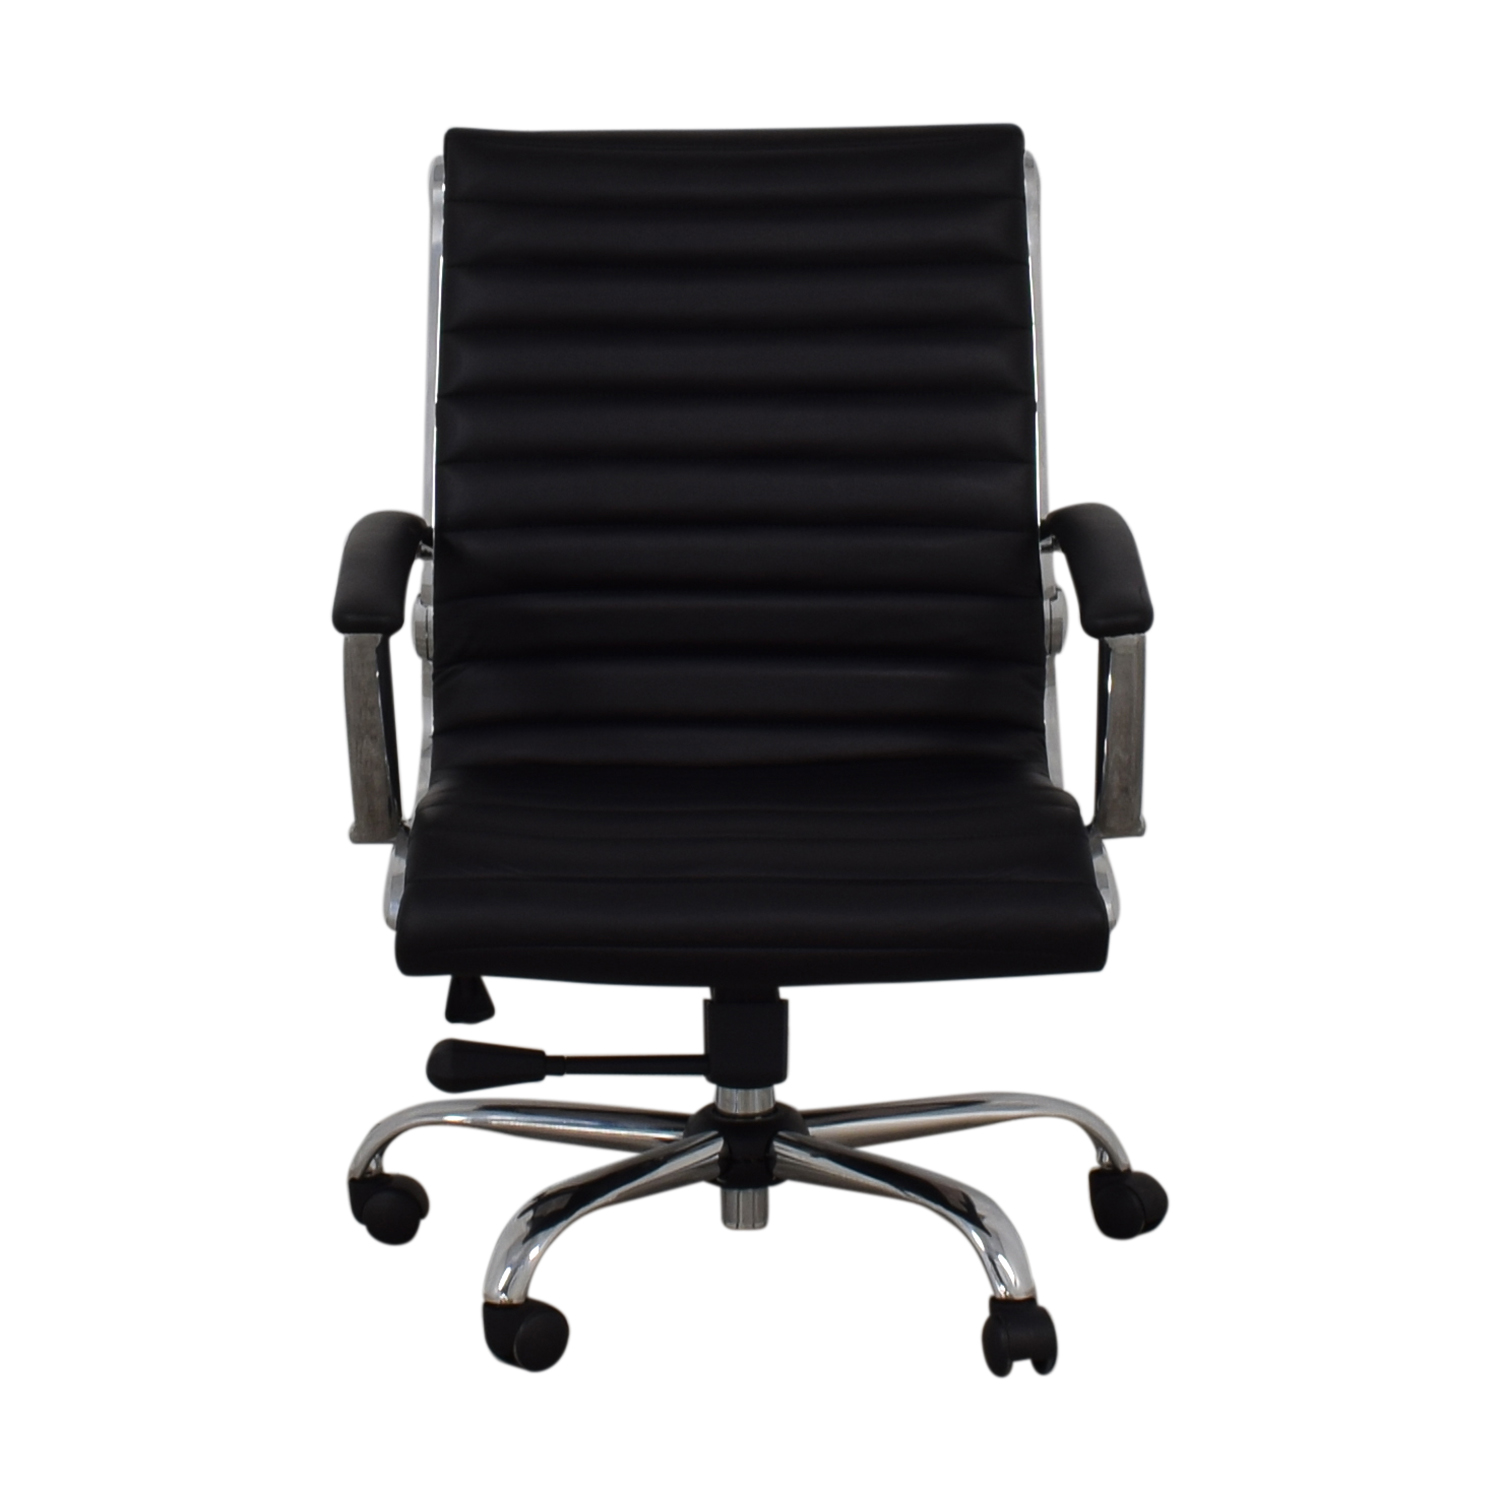 73 Off Staples Staples Adjustable Black Office Chair Chairs